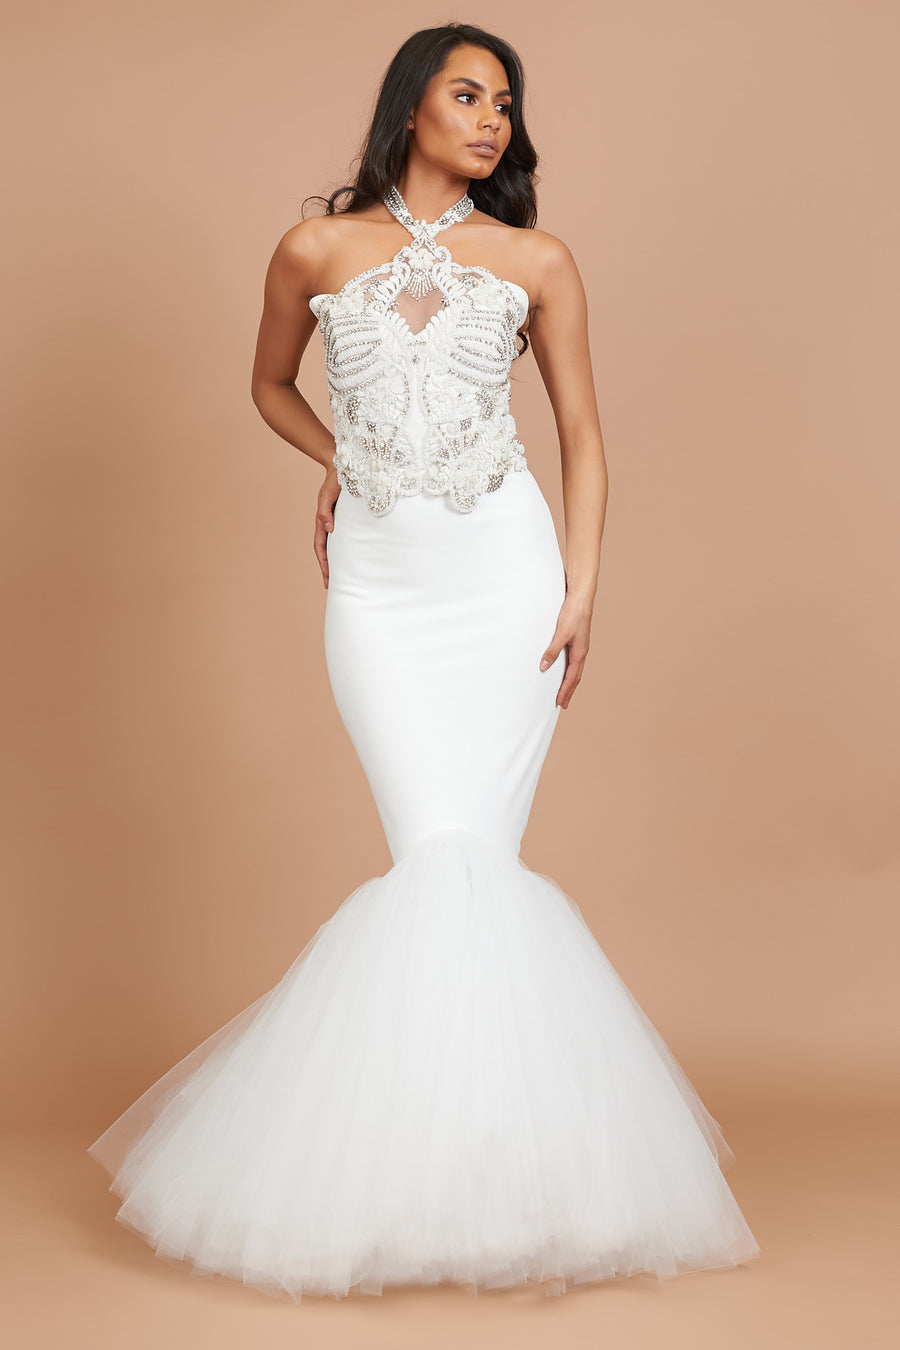 Ivory Beaded Fishtail Tulle Dress